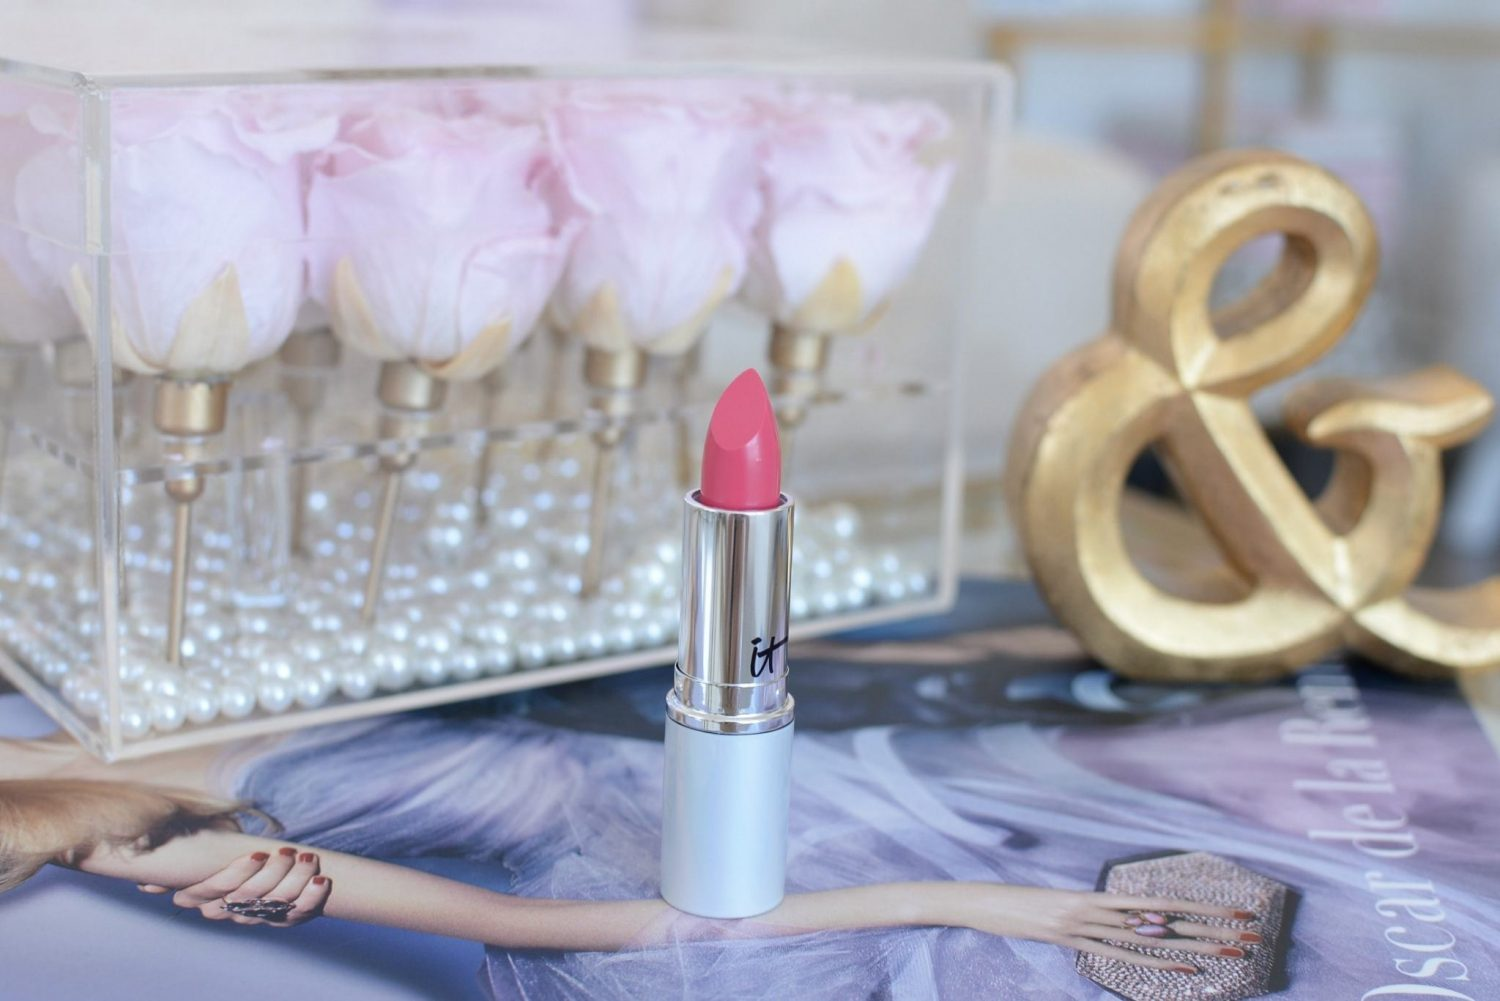 It Cosmetics Your Lips But Better lipstick